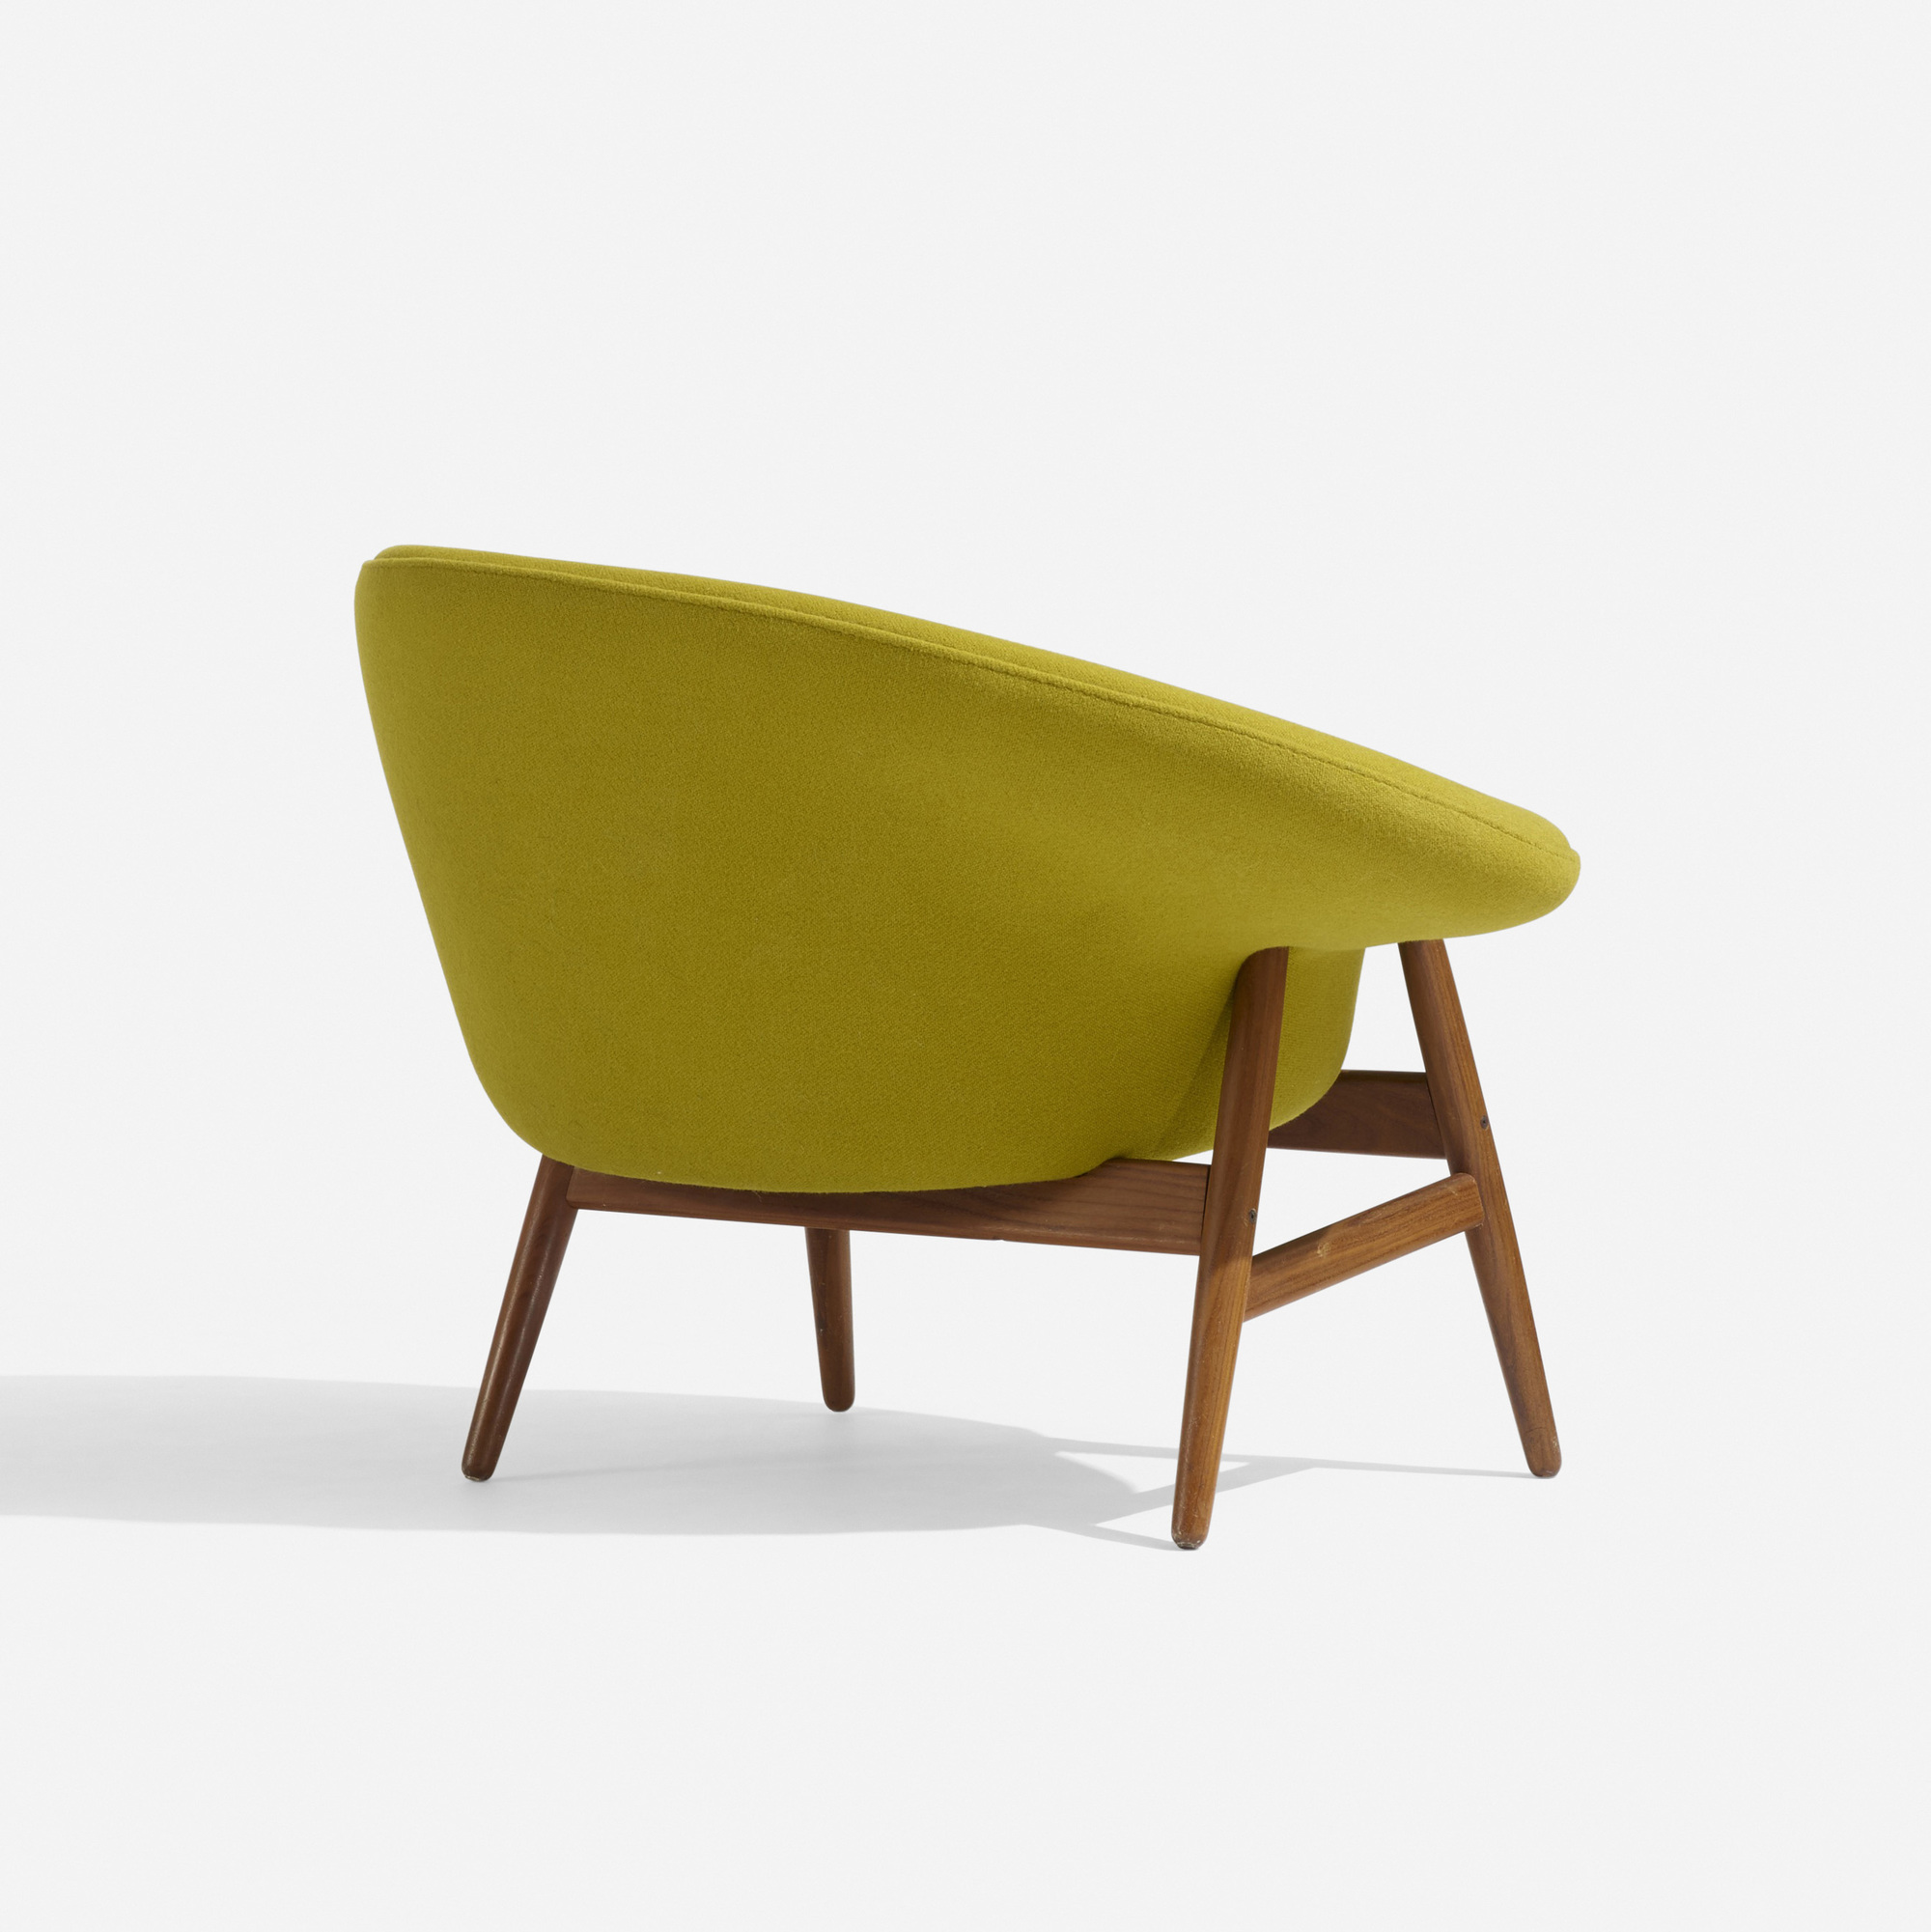 224: Hans Olsen / lounge chair, model 188 (3 of 4)